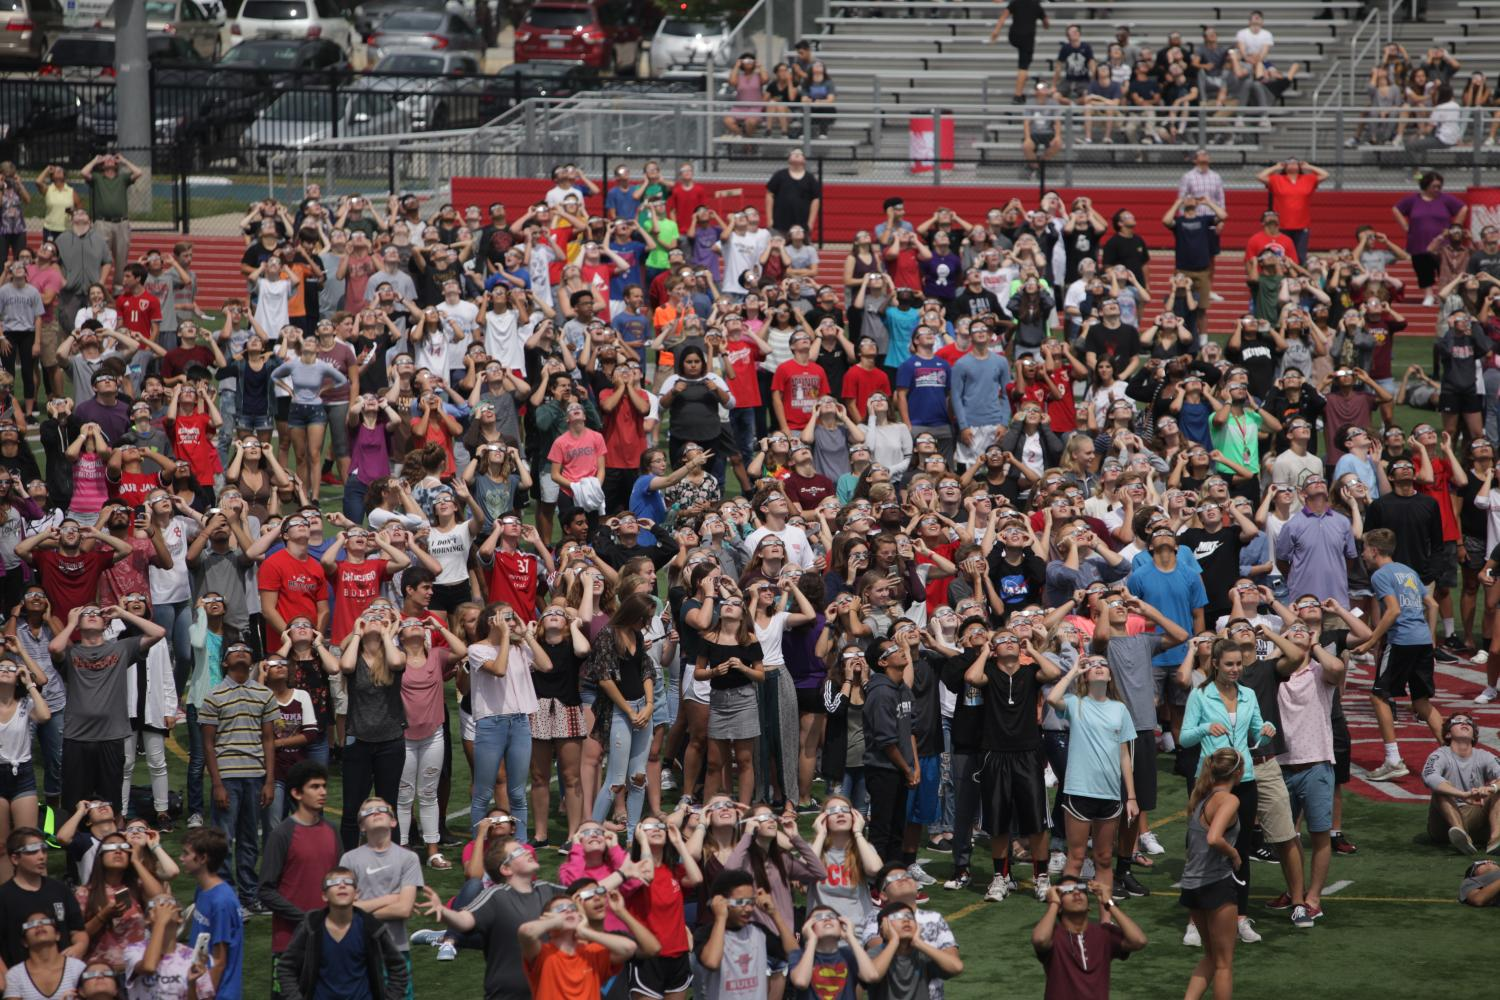 Central+students+gather+on+the+football+field+to+view+the+eclipse+on+Aug.+21.